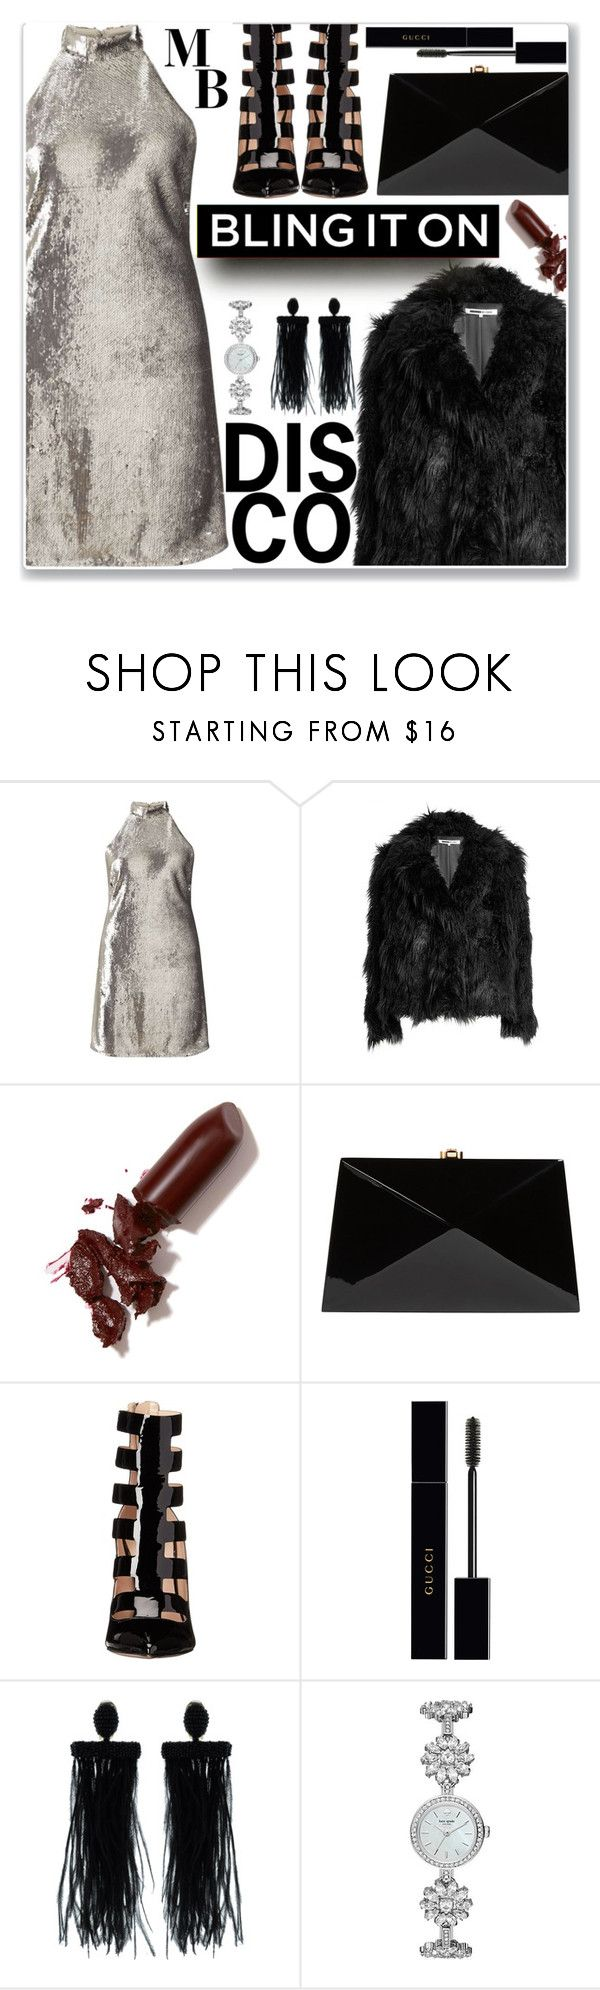 """DISCO"" by gpatricia ❤ liked on Polyvore featuring Miss Selfridge, McQ by Alexander McQueen, LAQA & Co., Rocio, Ruthie Davis, Gucci, Oscar de la Renta and Kate Spade"